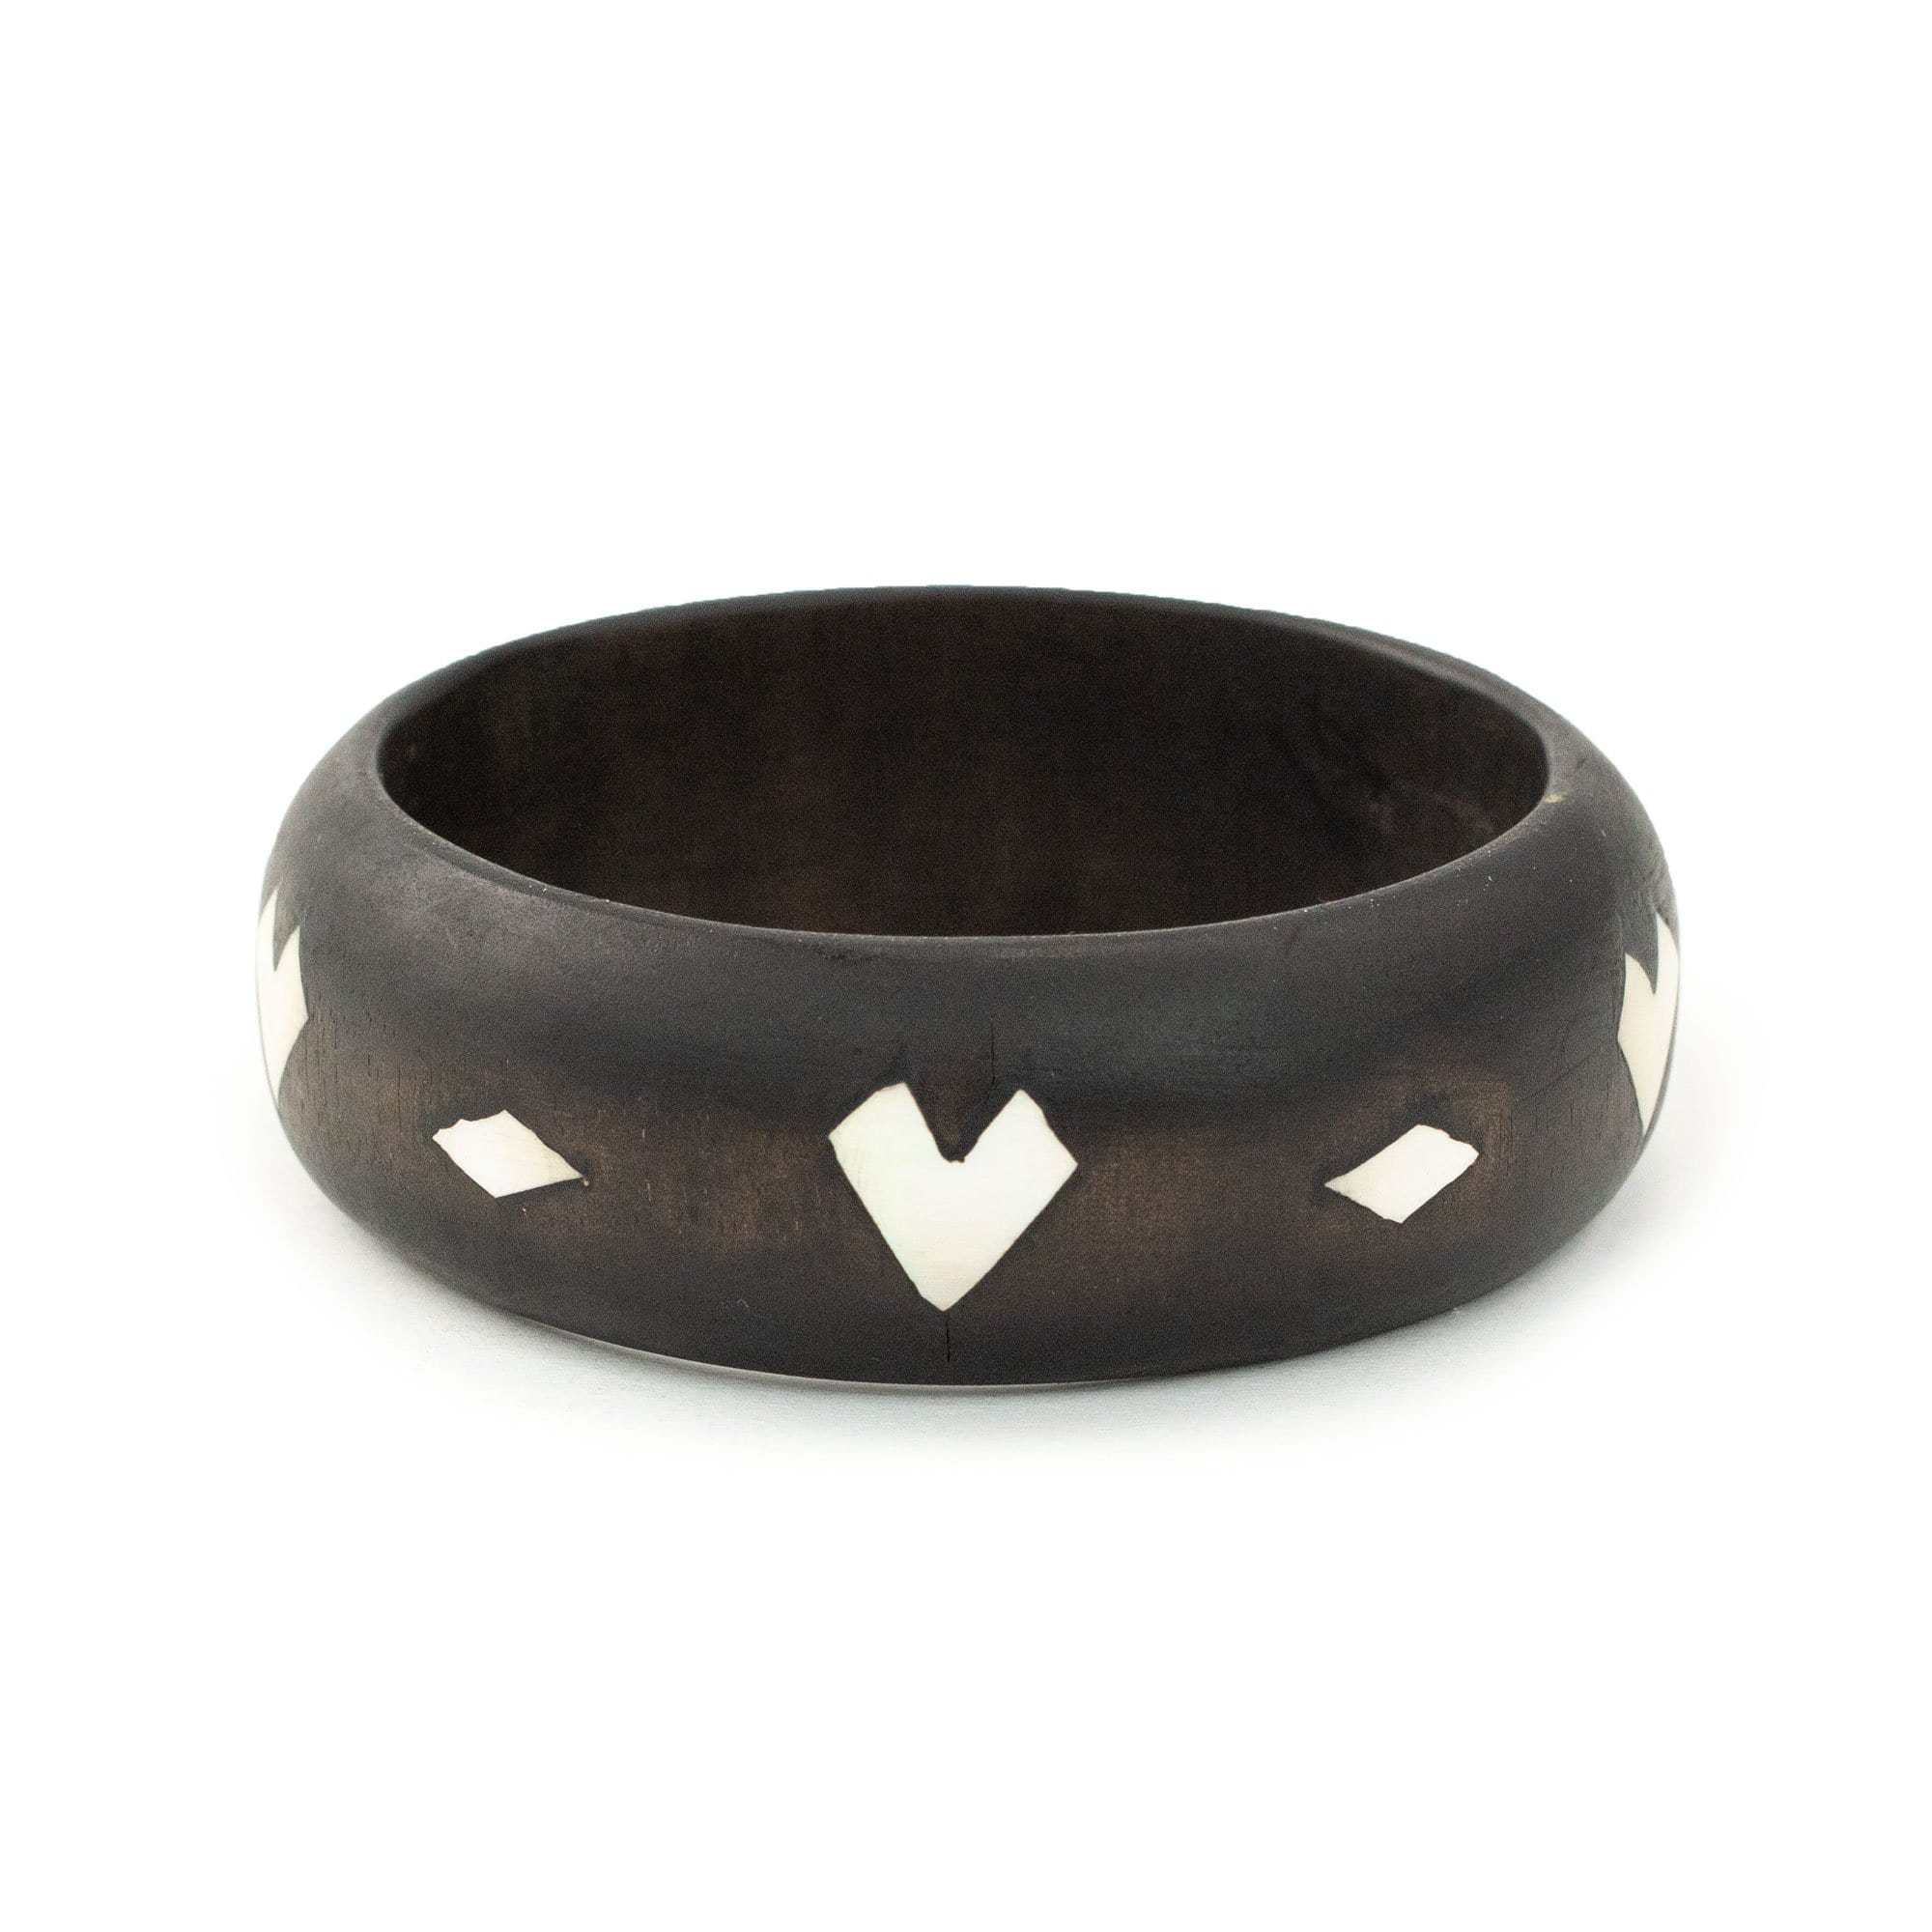 Mindanao Pearl & Wood Bangle - Heart made by artisans in the Philippines. Love Is Project creates jobs.